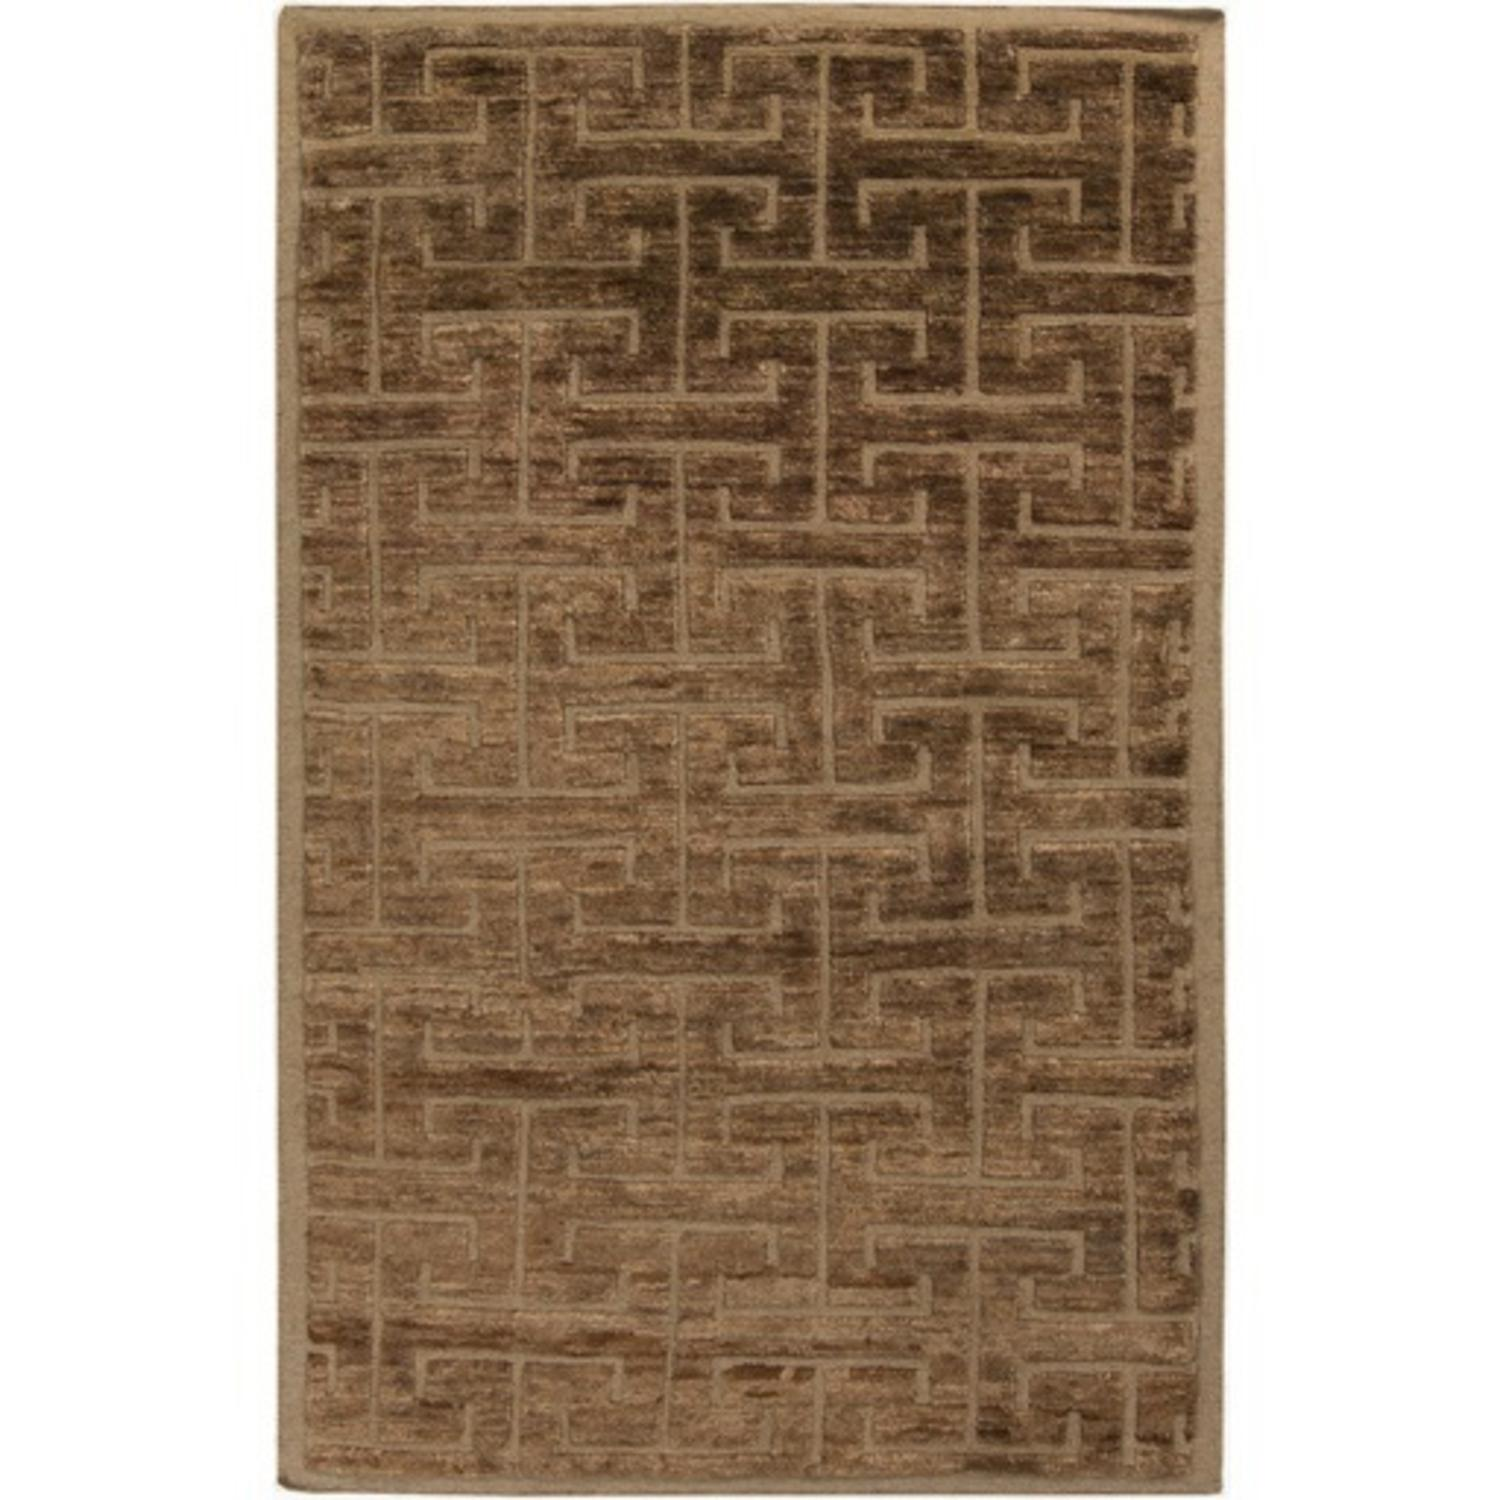 3.25' x 5.25' Forked Maze Umber and Tuscan Brown Hand Knotted Area Throw Rug